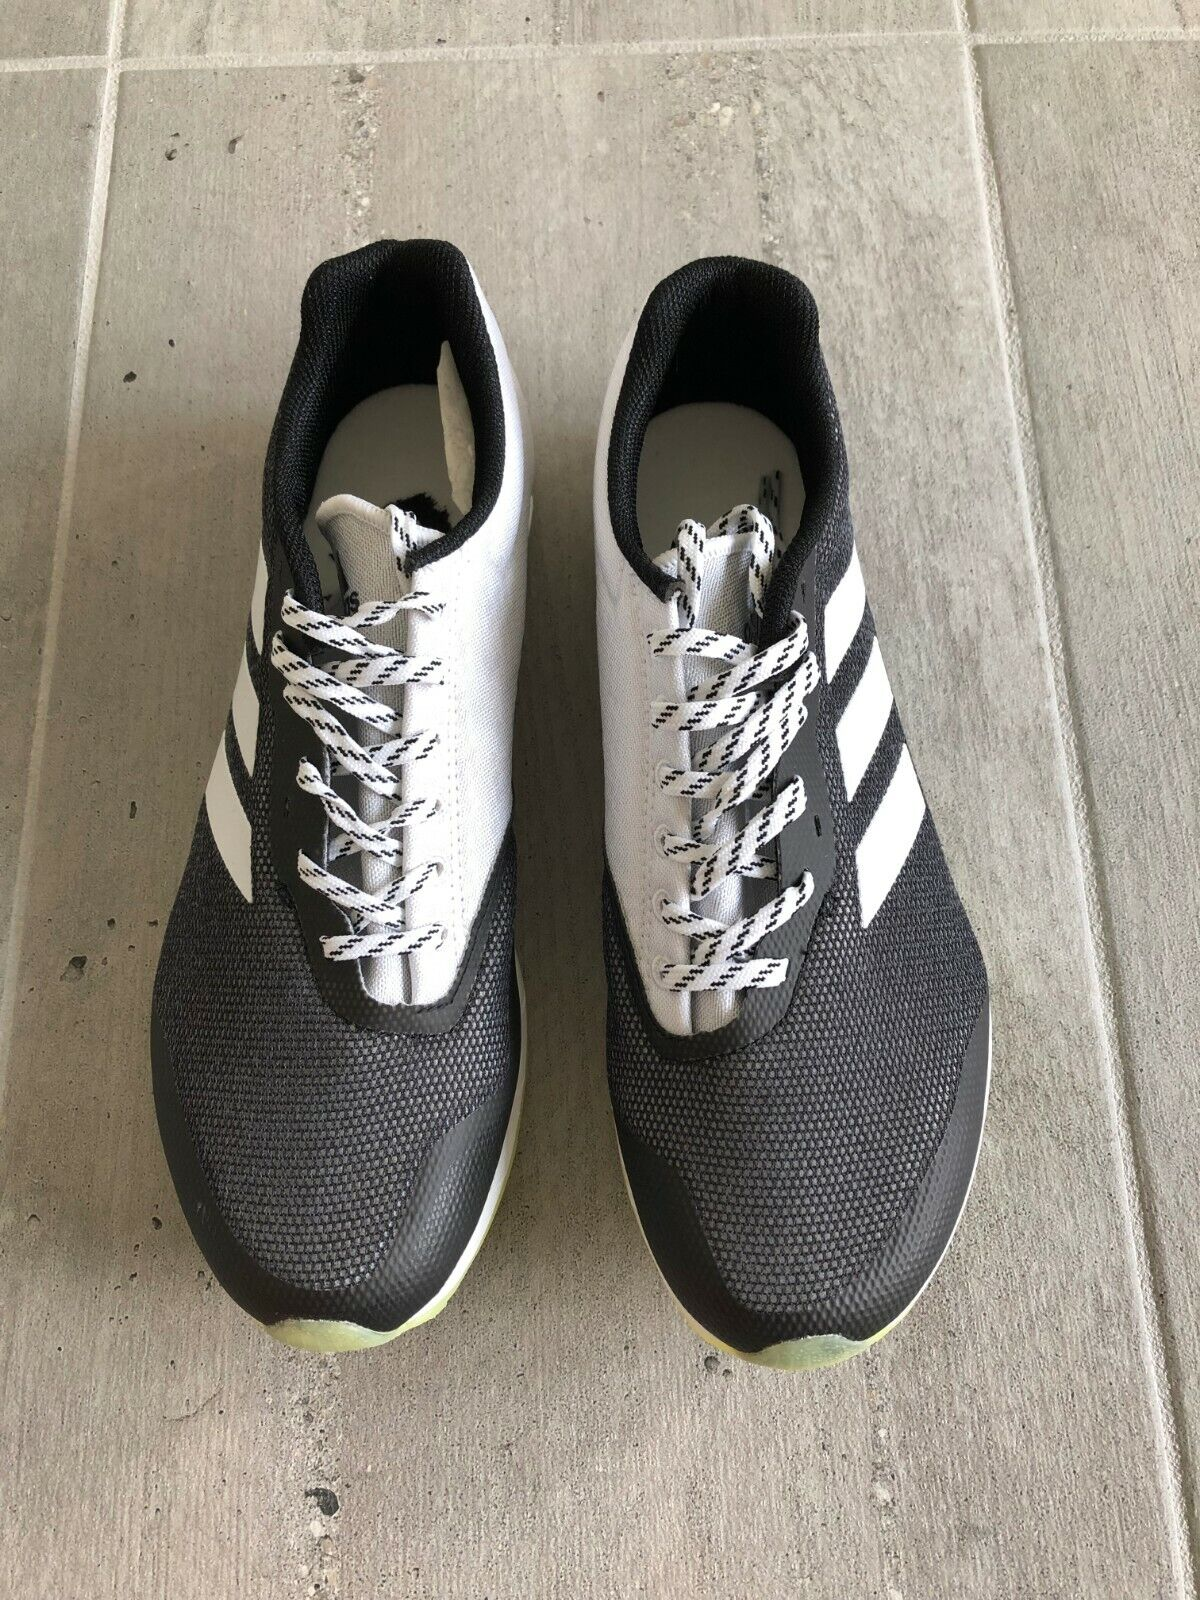 ADIDAS Performance Women's XCS W Cross-Country running shoes black and white 8